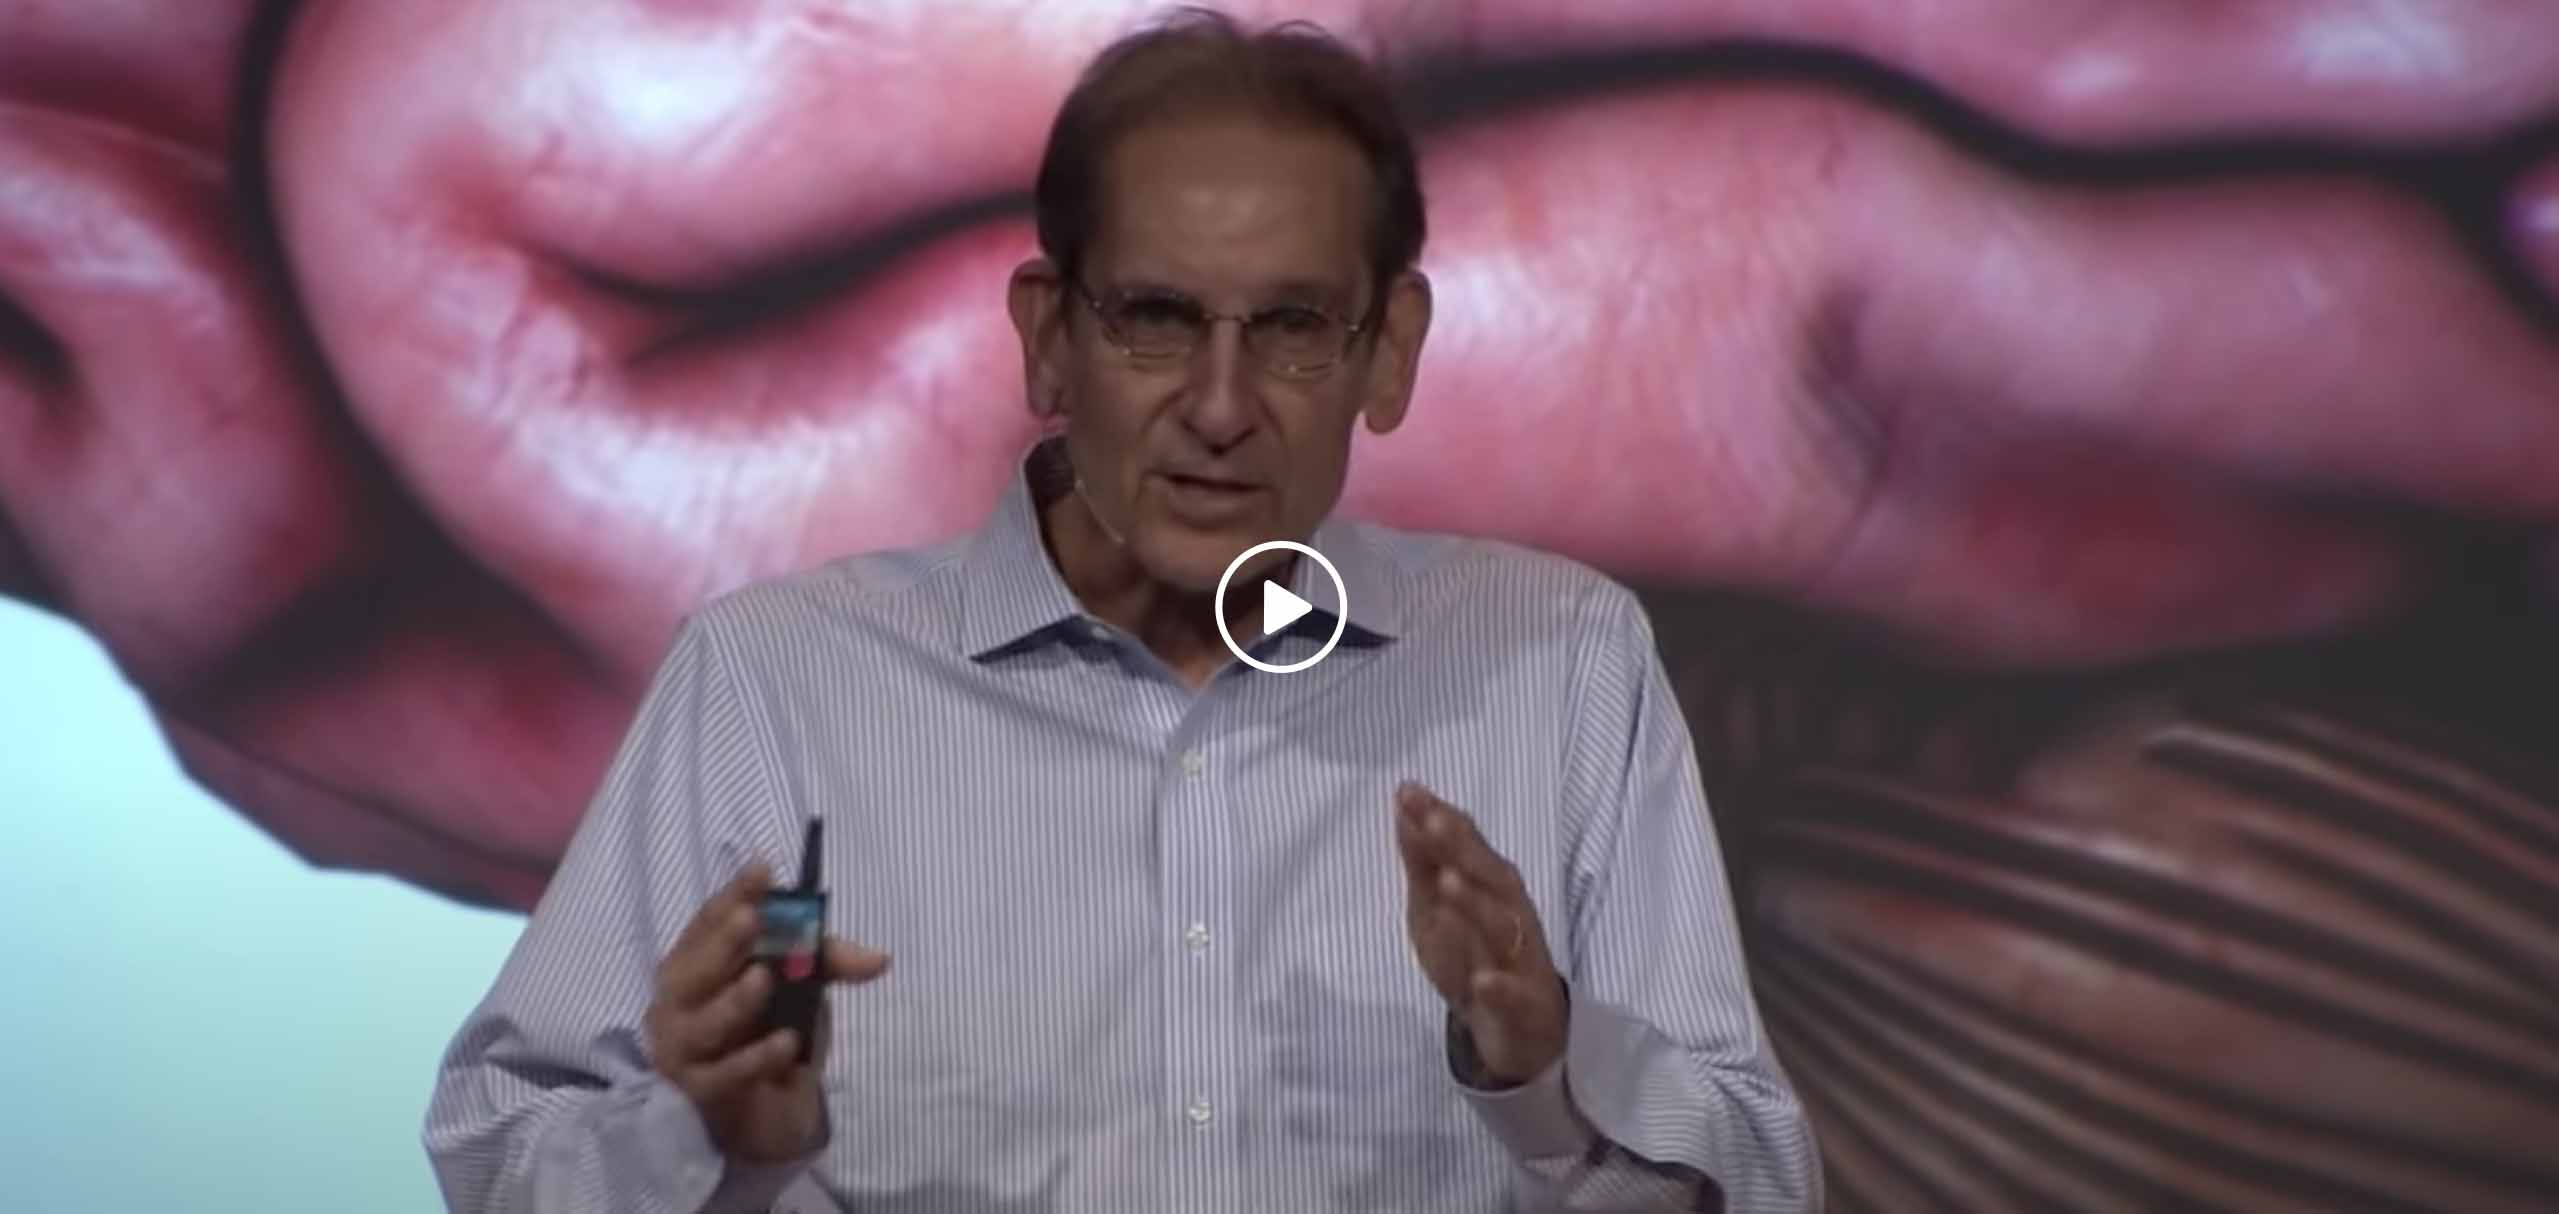 John J. Ratey giving a TED Talk.